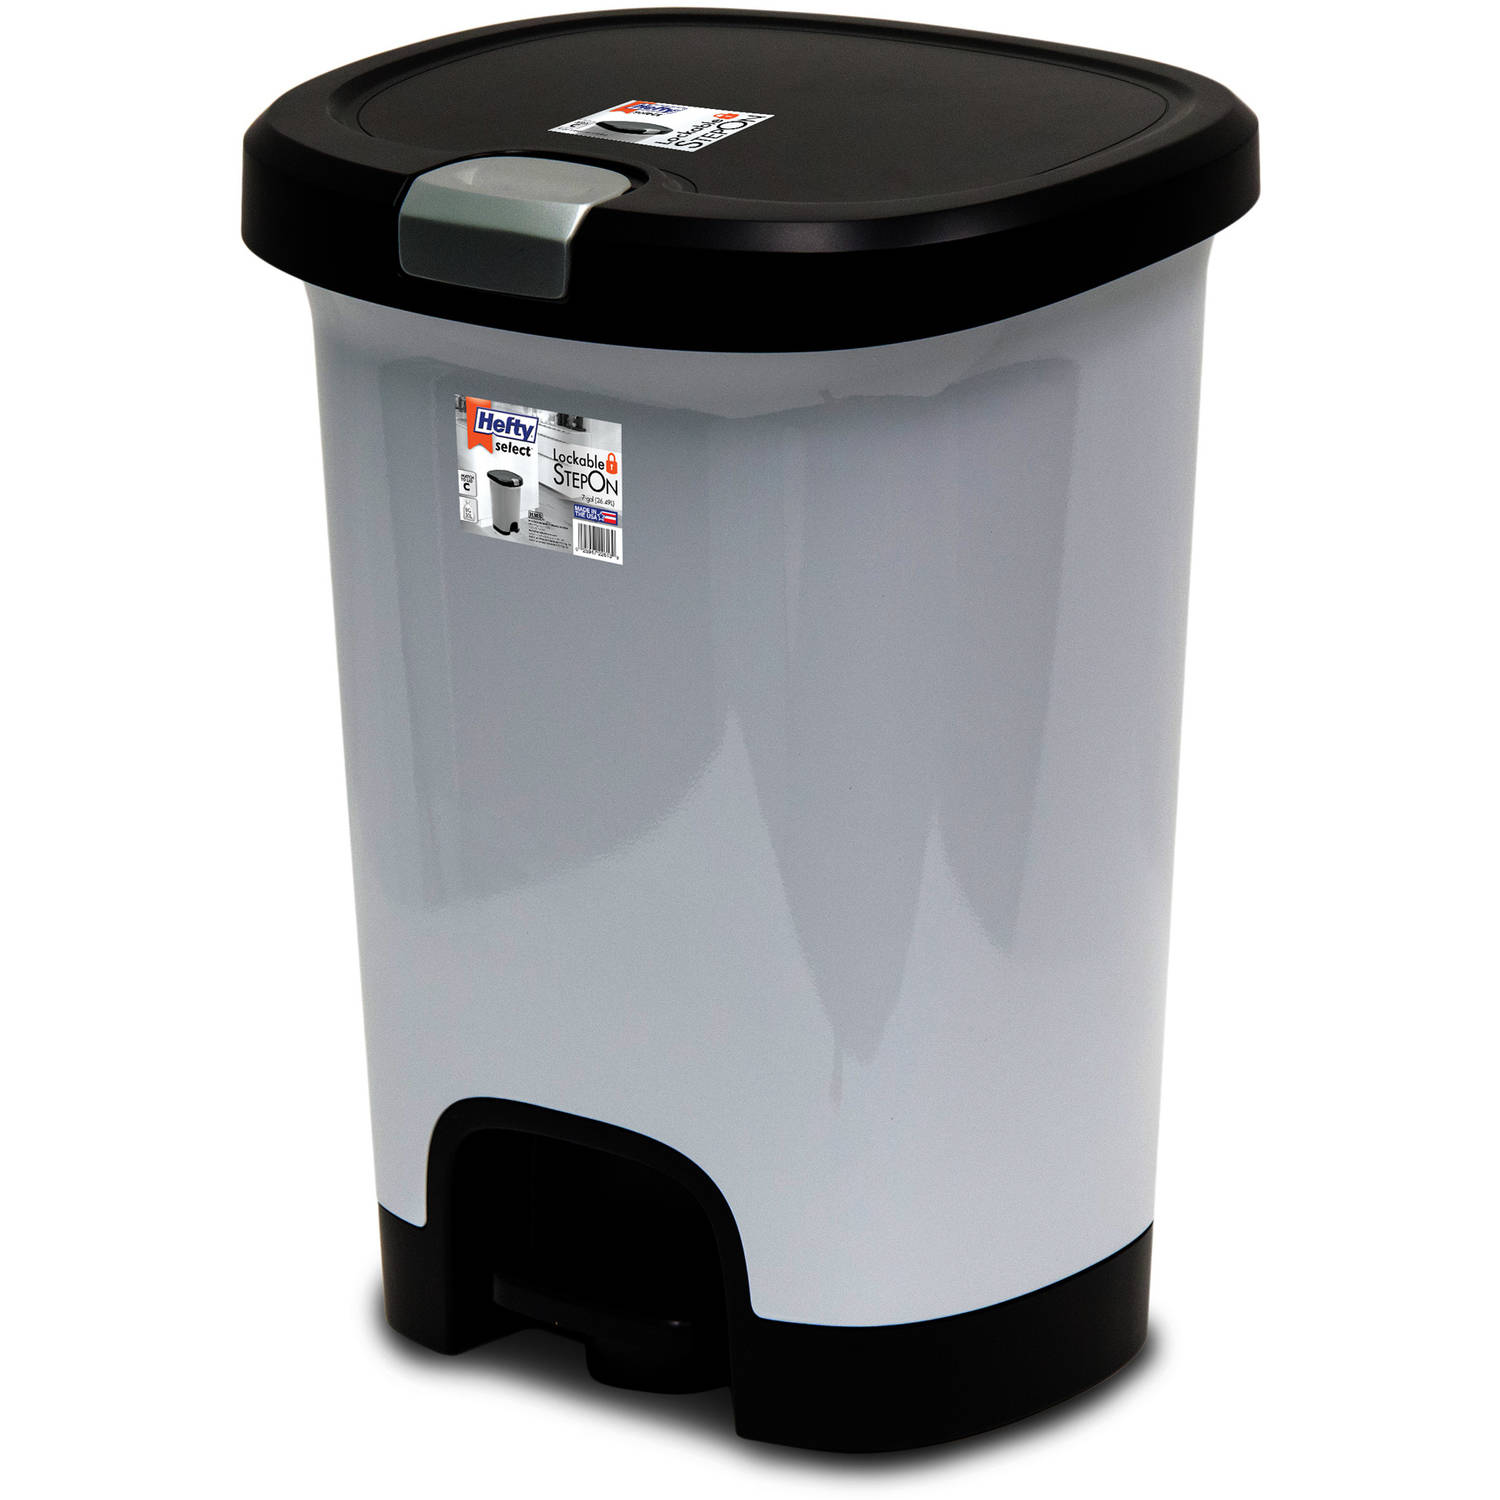 On Trash Can With Lid Lock Garbage Basket Plastic Cans Hefty 7 Gal